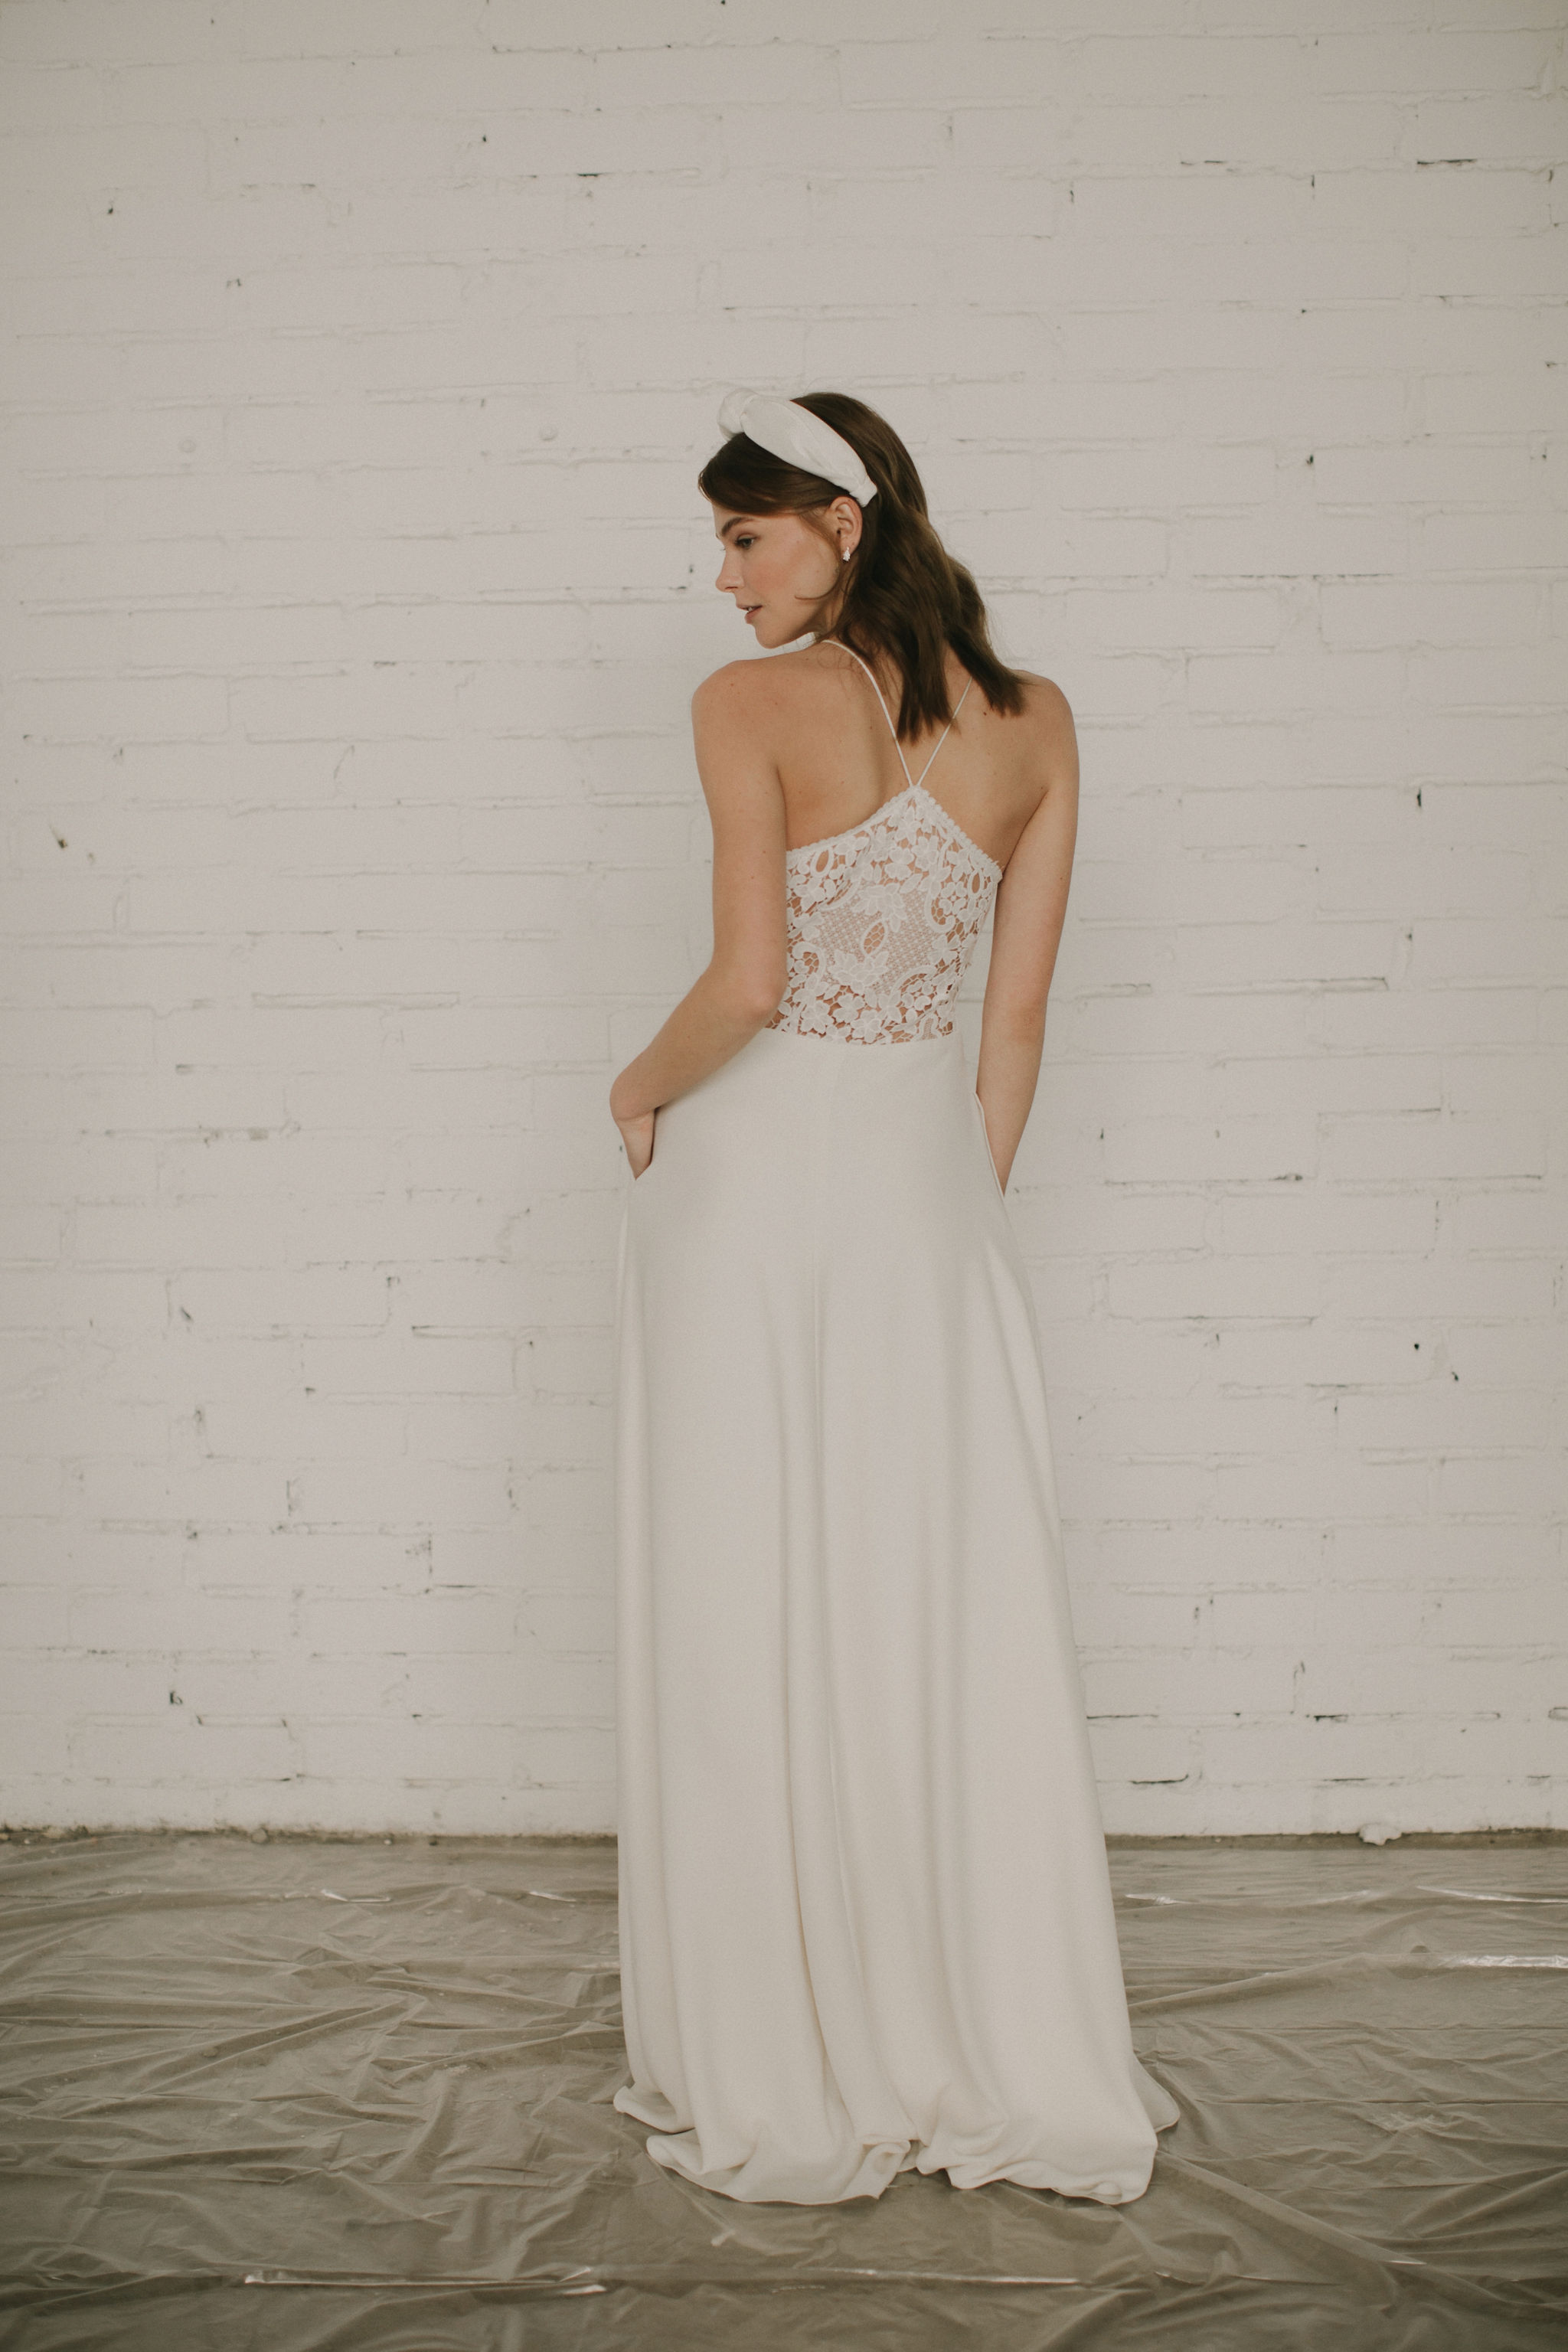 OTADUY 2020 BOHO WEDDING DRESS COLLECTION AT ARCHIVE 12